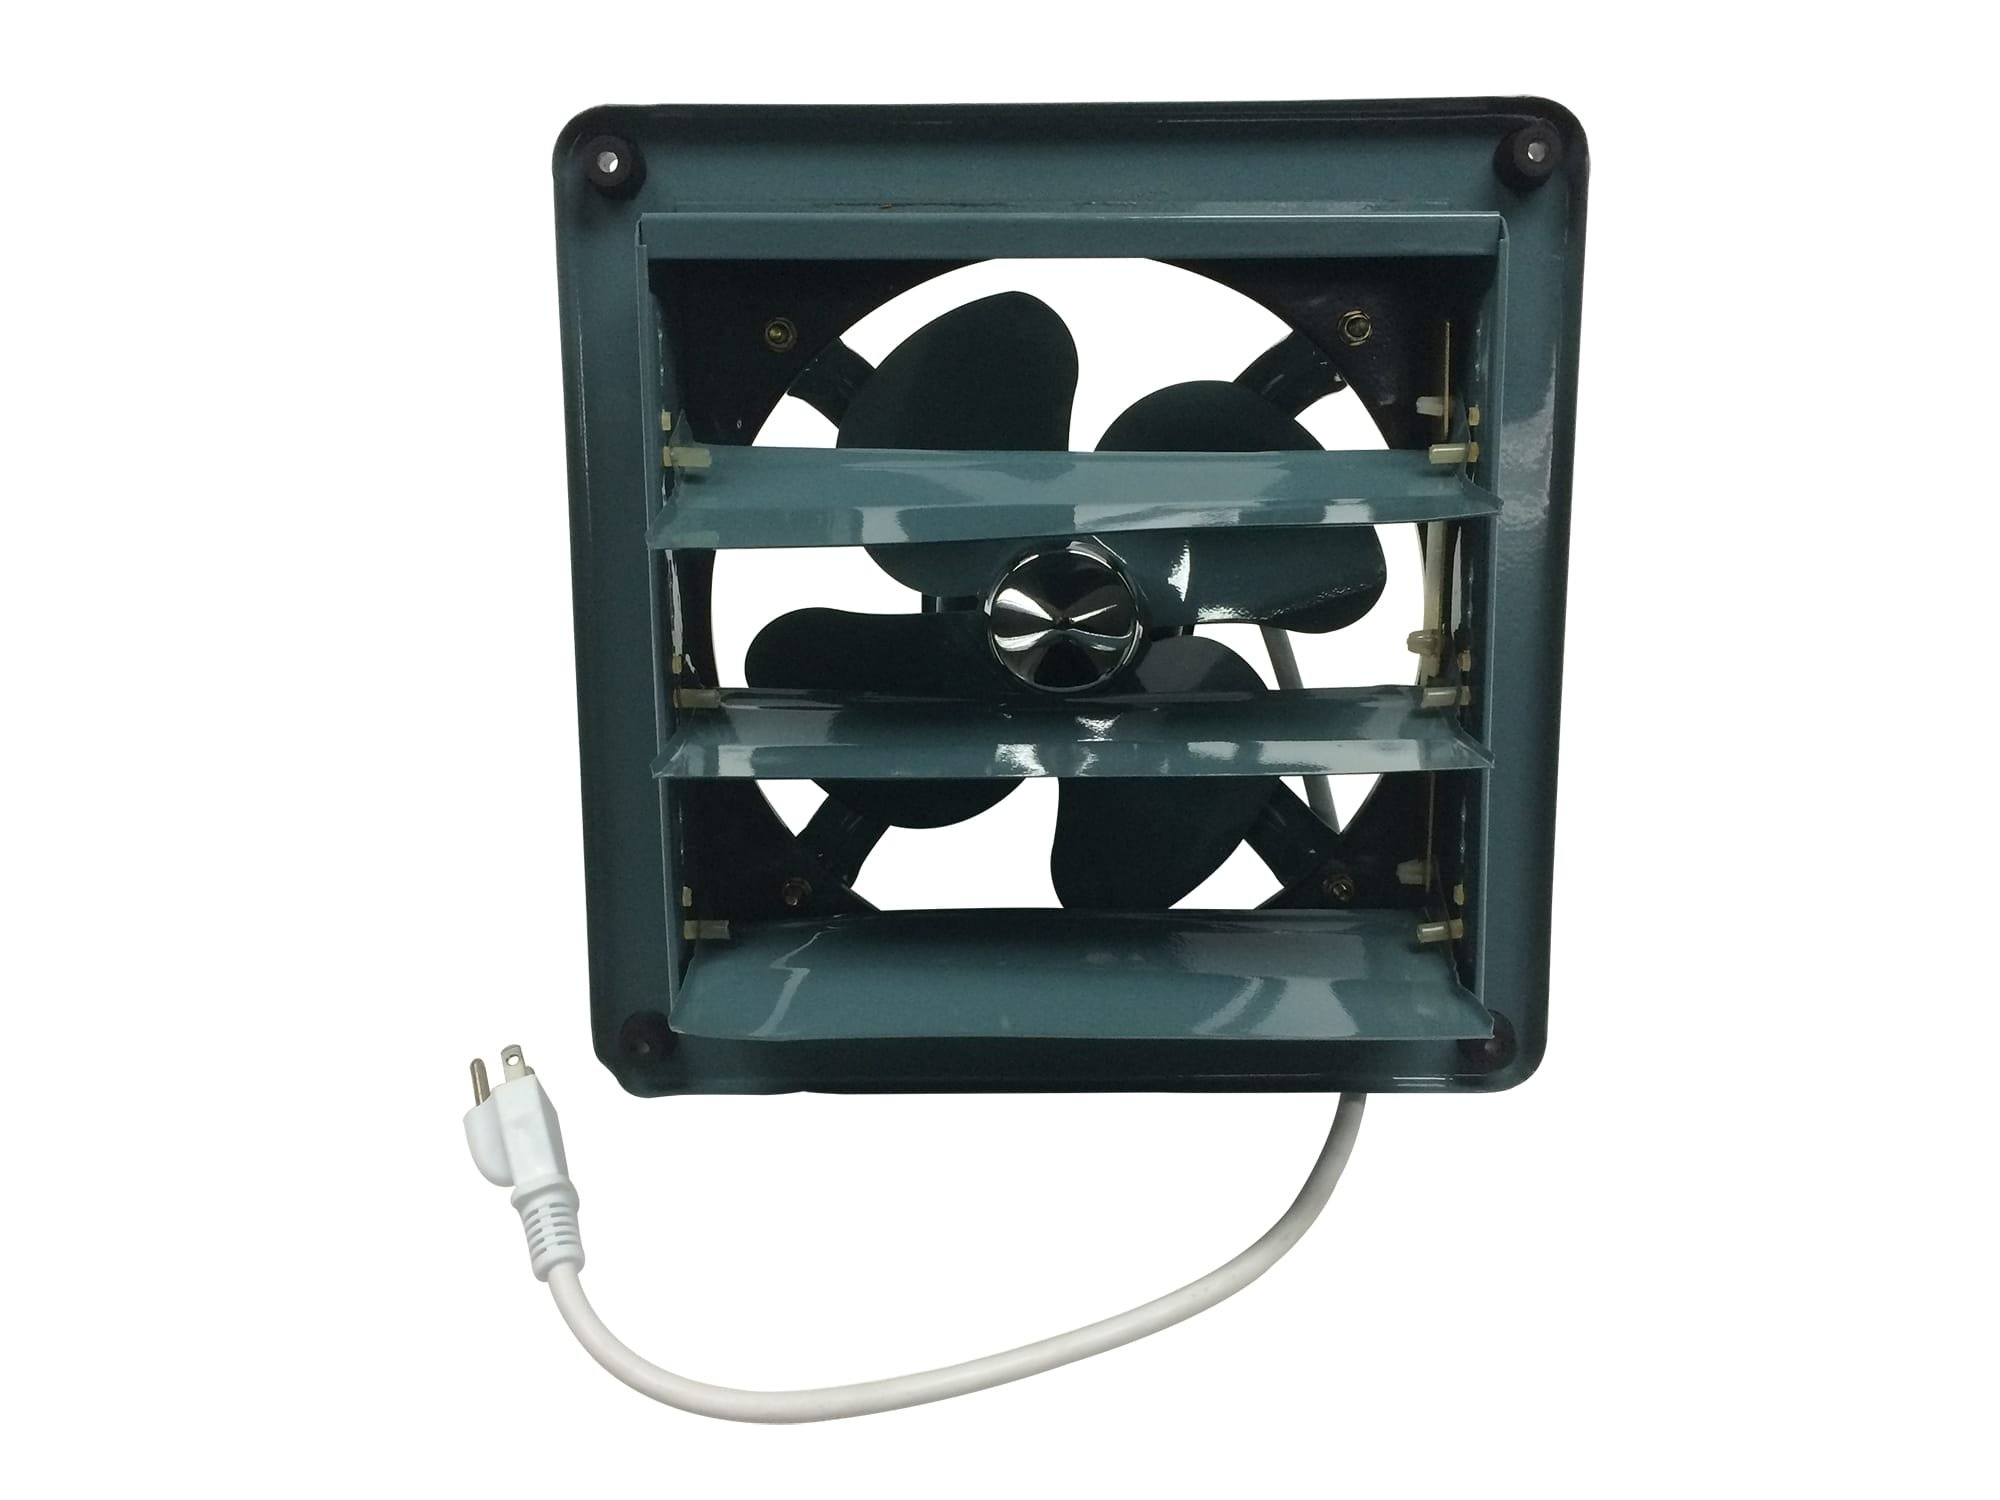 Professional Grade Products 9800511 Metal Shutter Exhaust Fan for Garage Shed Pole Barn Hydroponic Ventilation, 8''